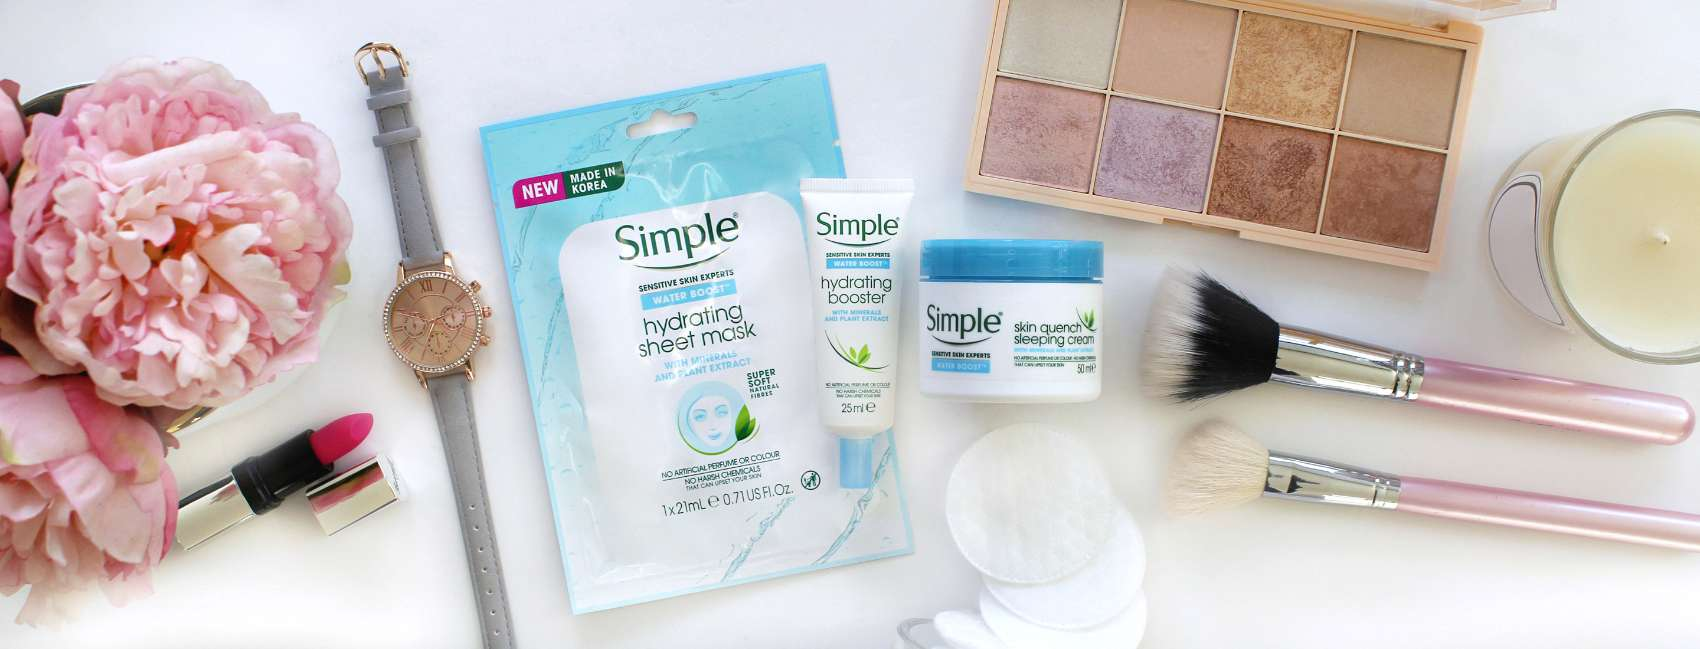 Flat lay of Simple water boost products alongside pink flowers and make-up.